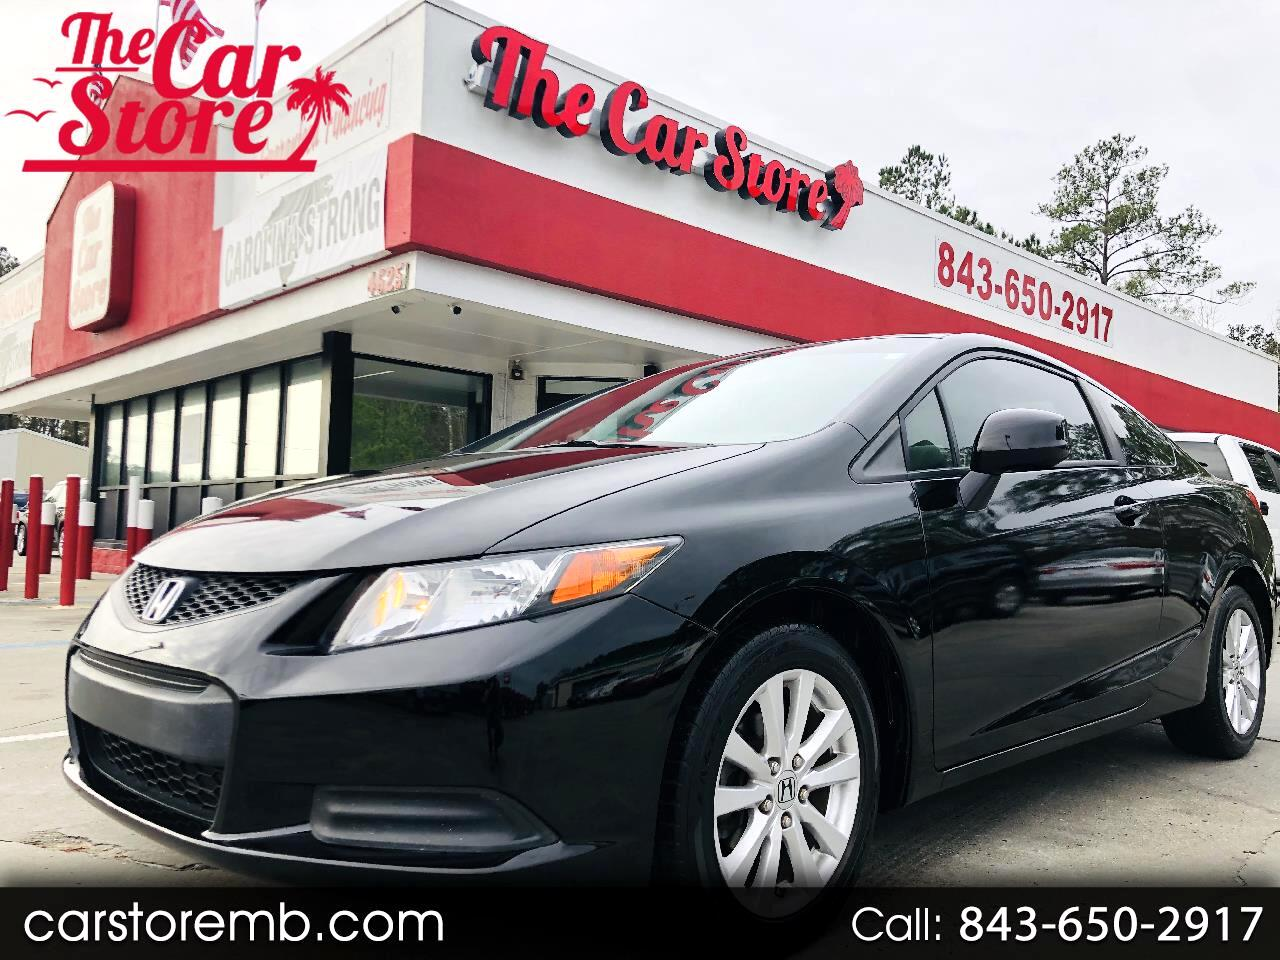 Honda Civic EX Coupe 5-Speed AT 2012